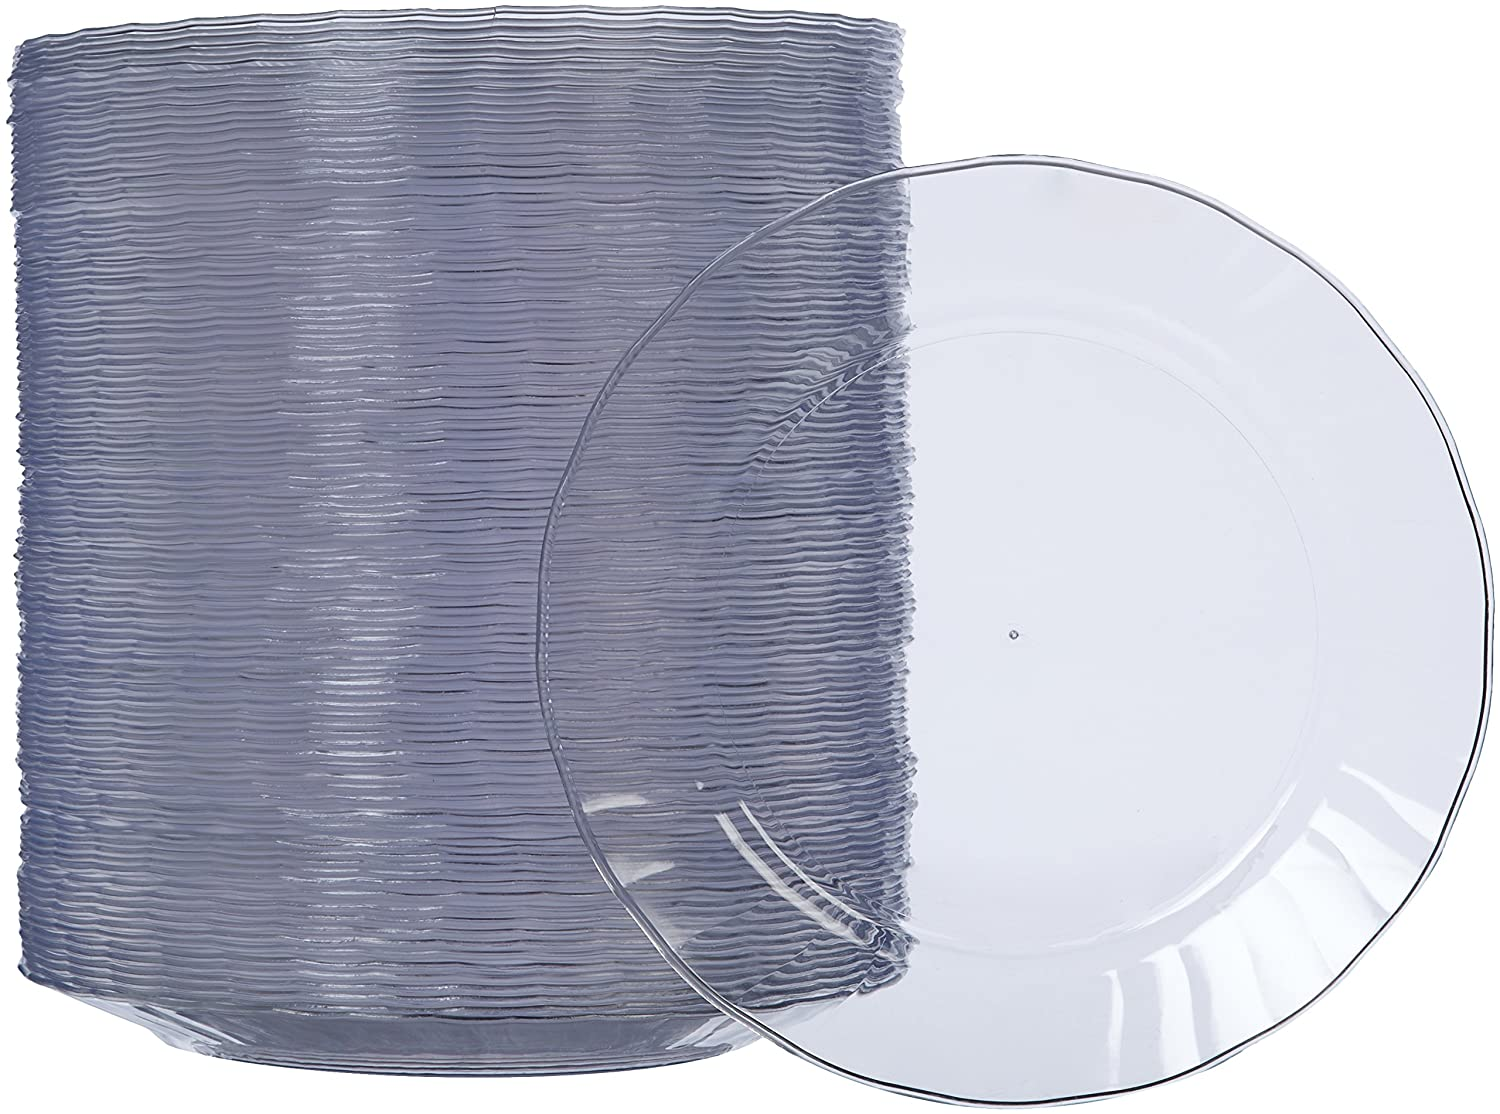 AmazonBasics Disposable Plastic Plates - 100-Pack, 7.5-inch